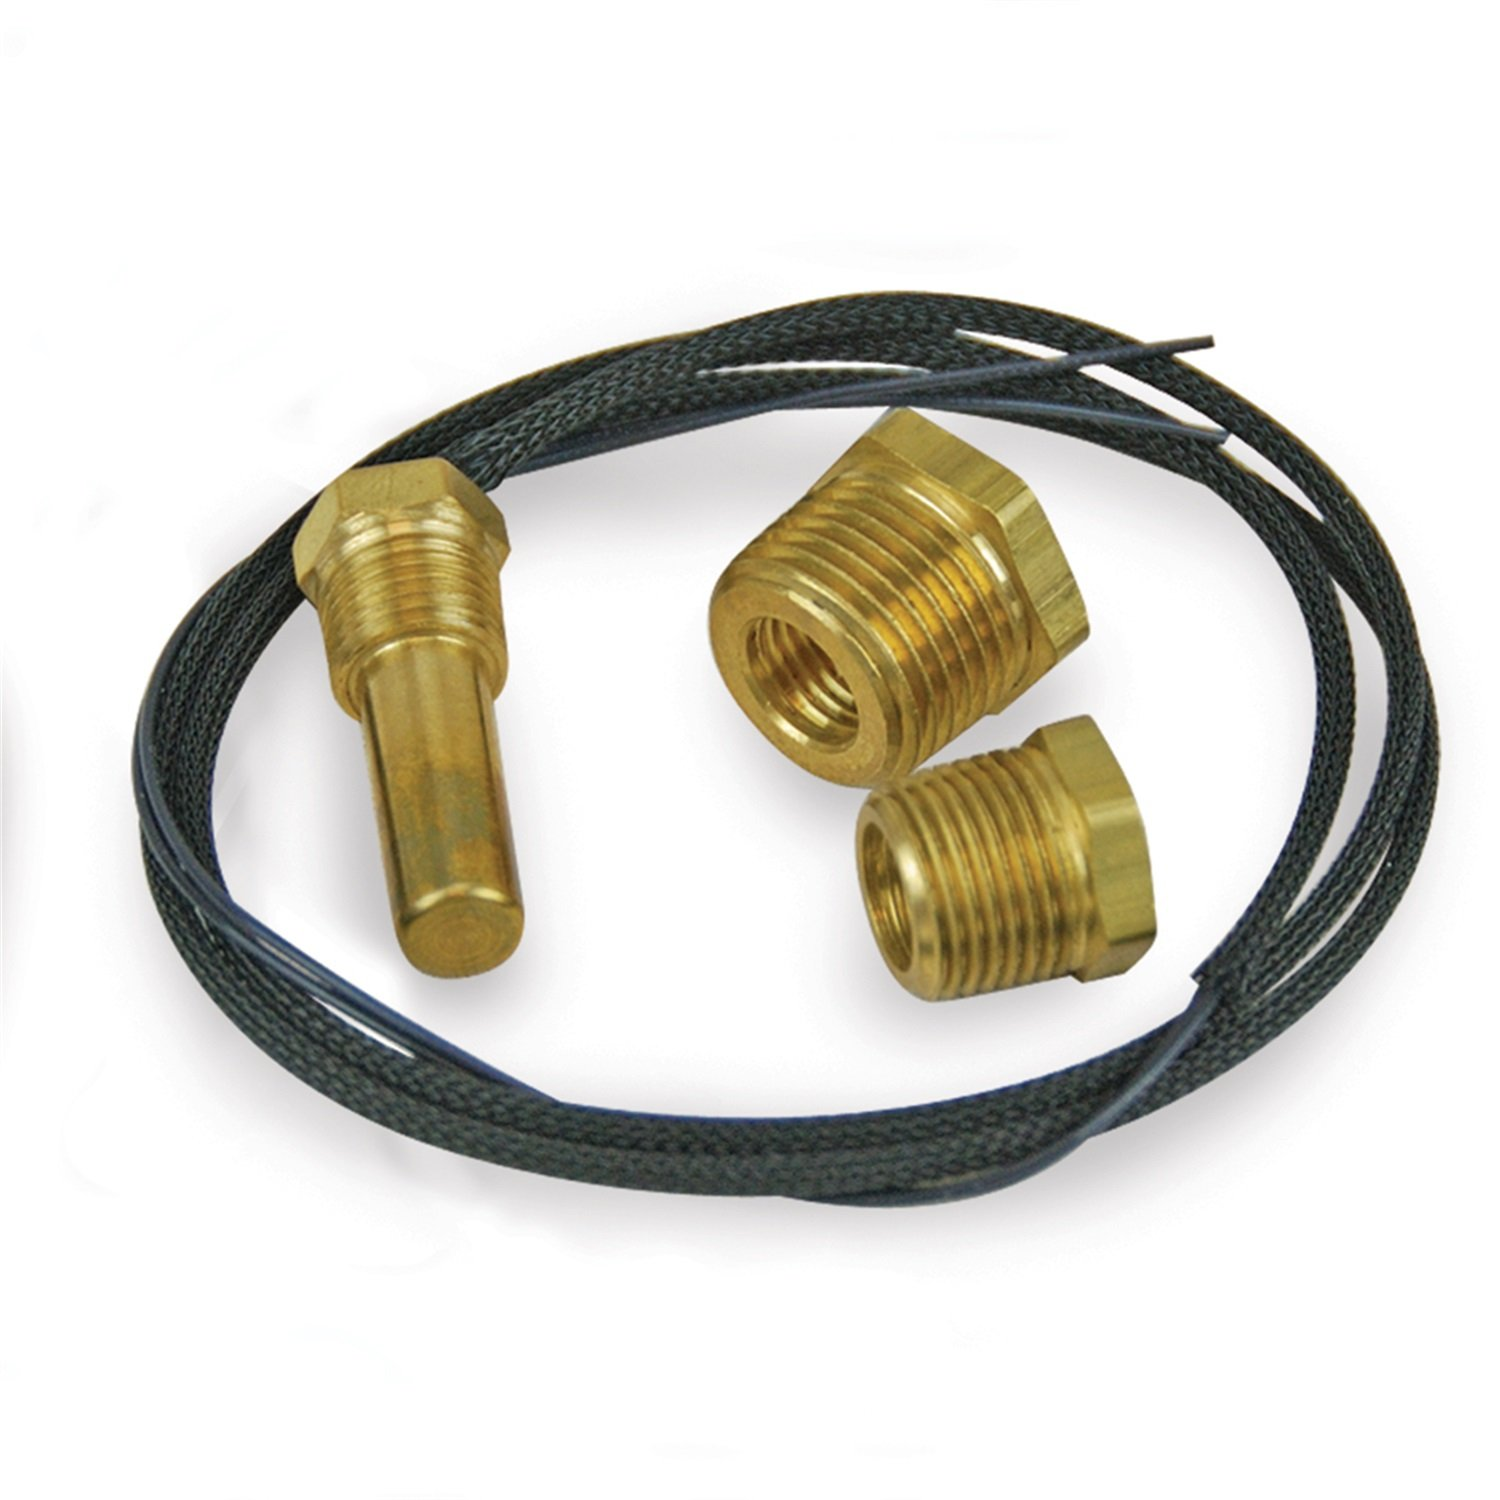 Flex-a-lite 32050 Temperature Sensor